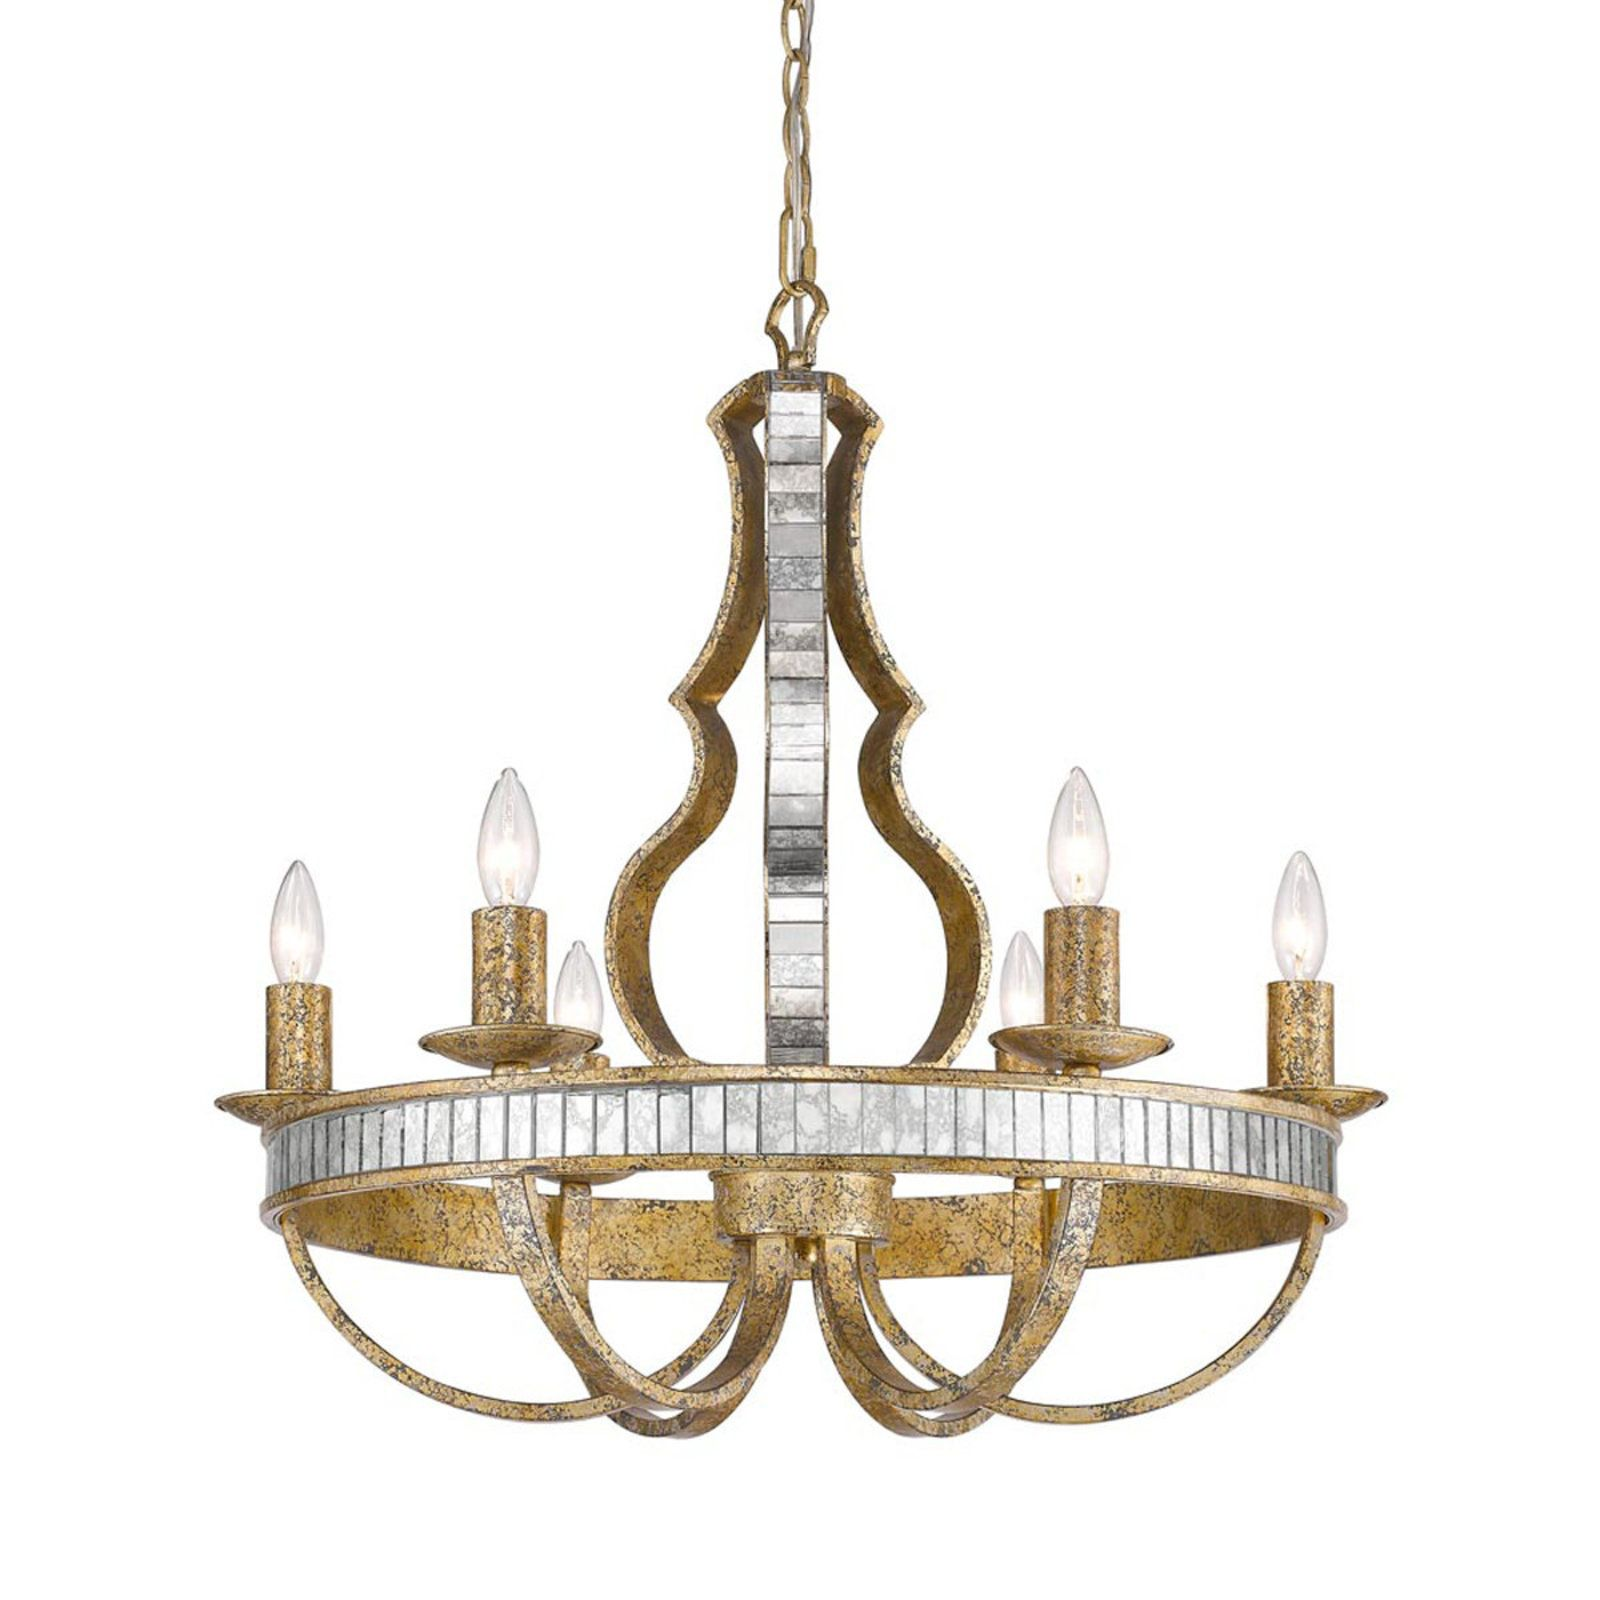 Old hollywood glam chandelier 6 light antique mirror tiles old hollywood glam chandelier 6 light shades of light antiqued mirrorantique arubaitofo Image collections